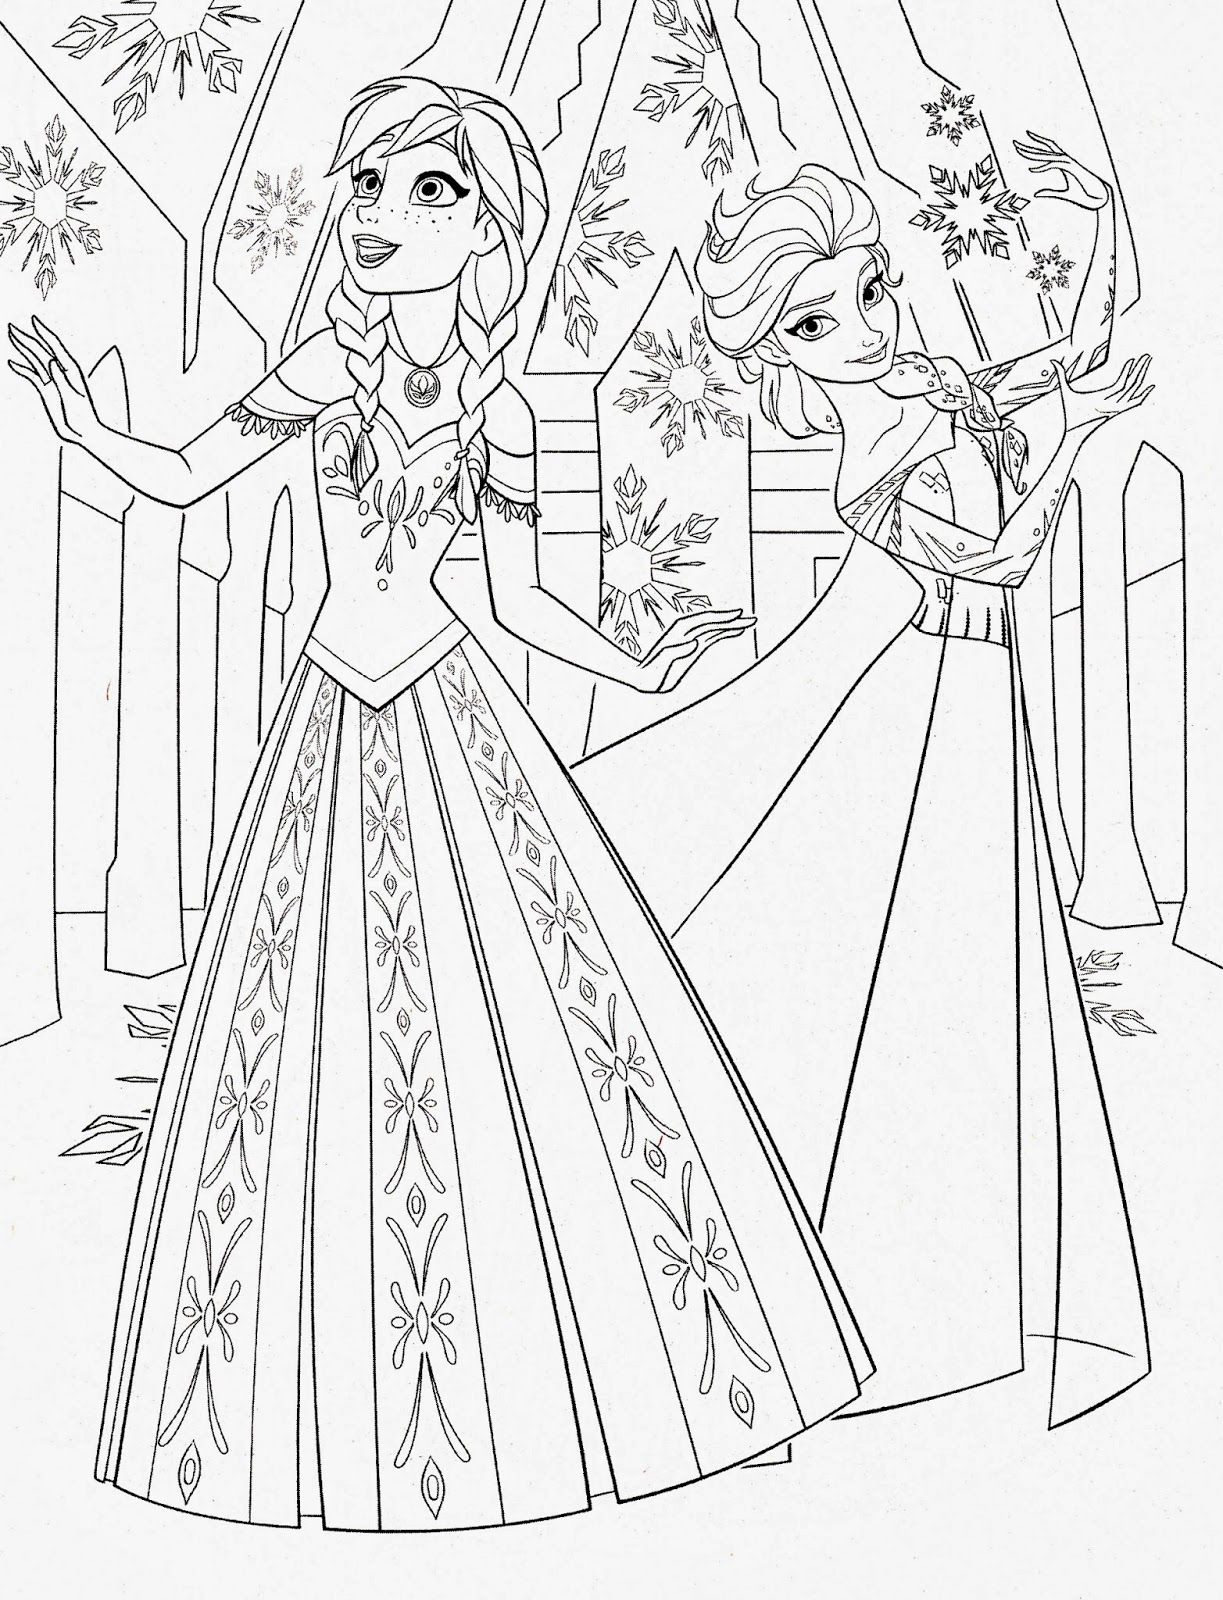 Frozen Printable Coloring Pages Disney Princess Coloring Pages